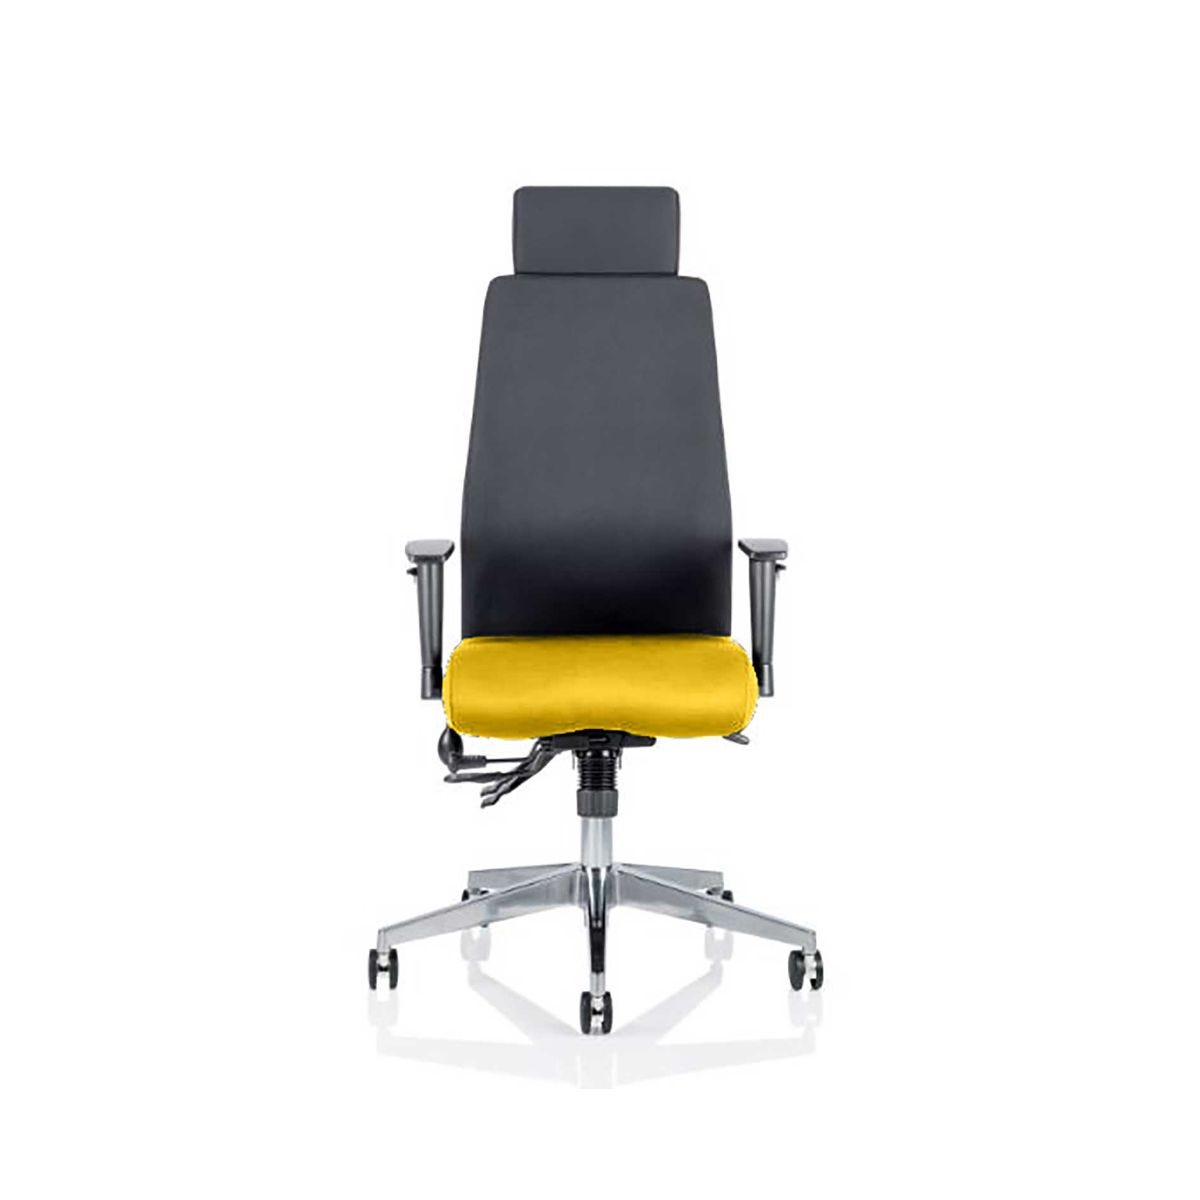 Onyx Office Chair With Headrest, Sunset